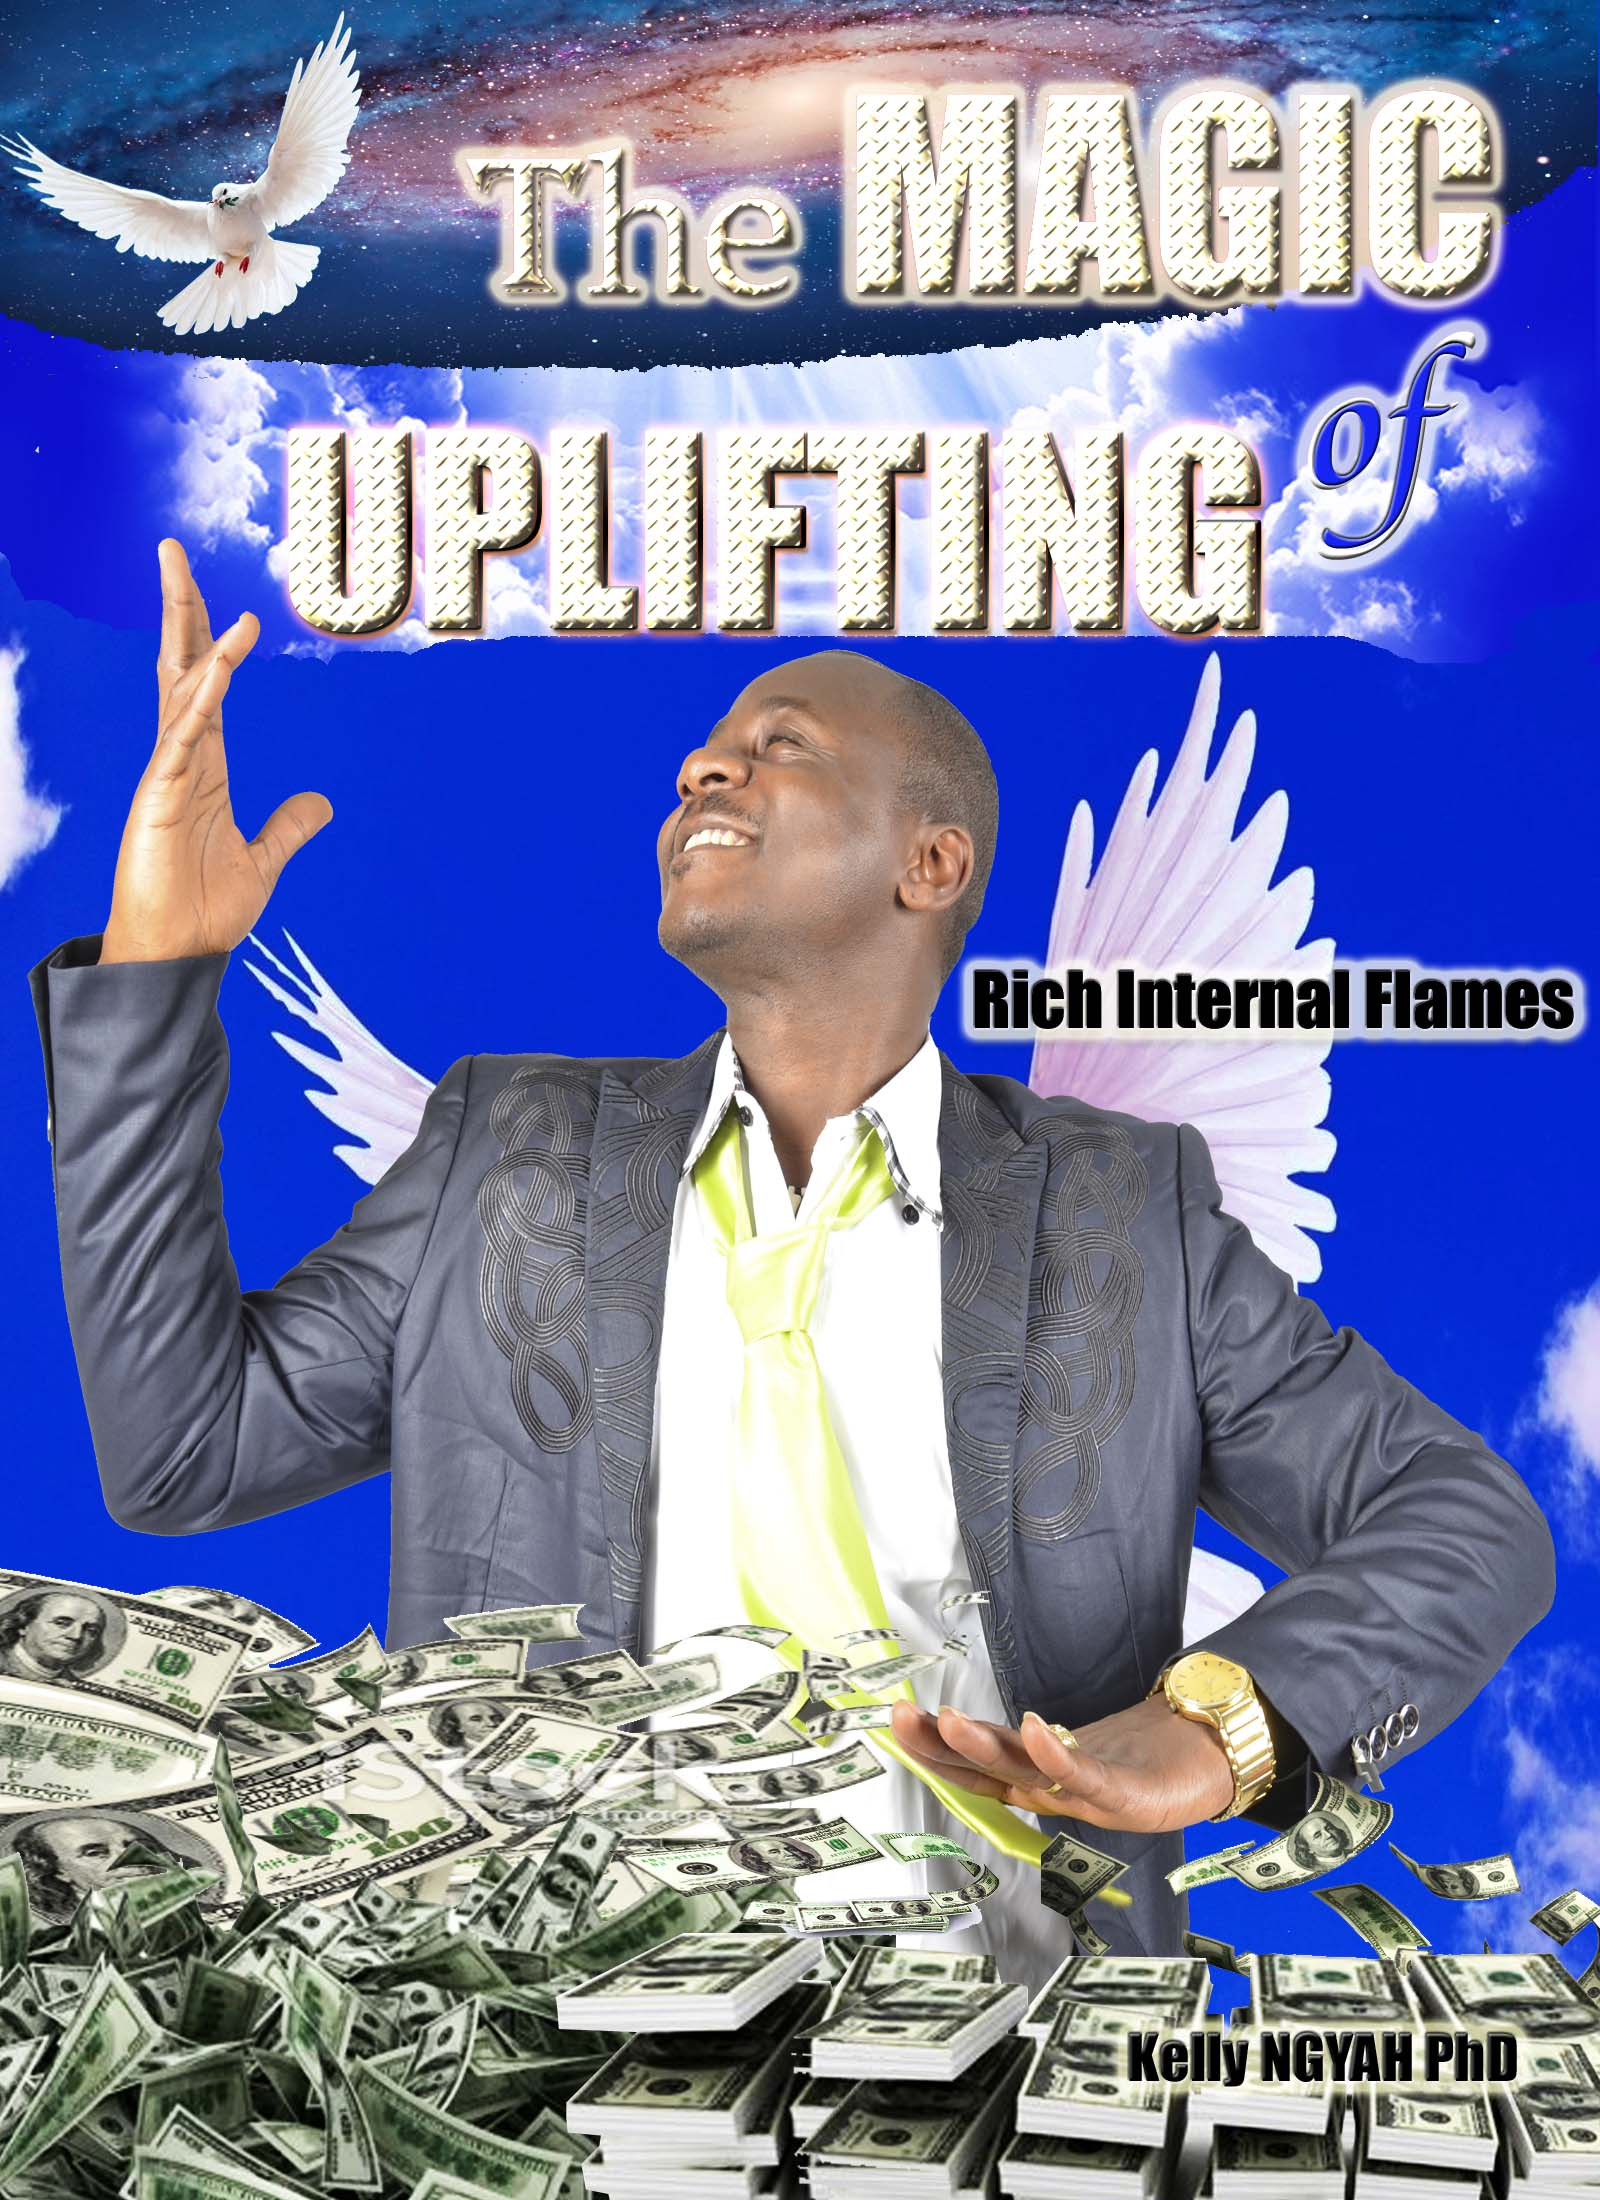 The Magic of Uplifting: Rich Internal Flames